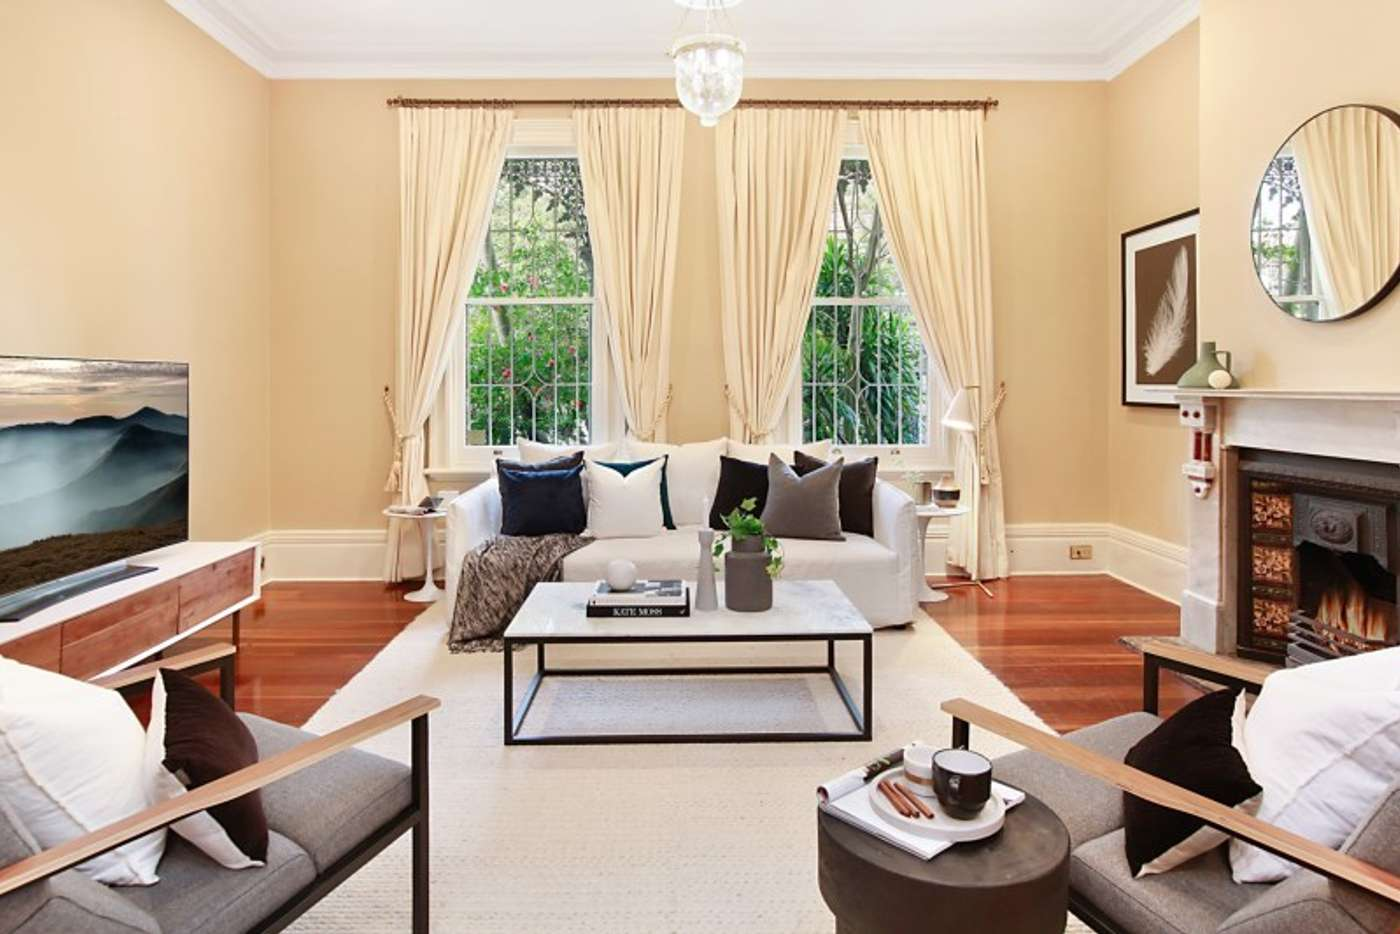 Main view of Homely house listing, 55 Brown Street, Paddington NSW 2021